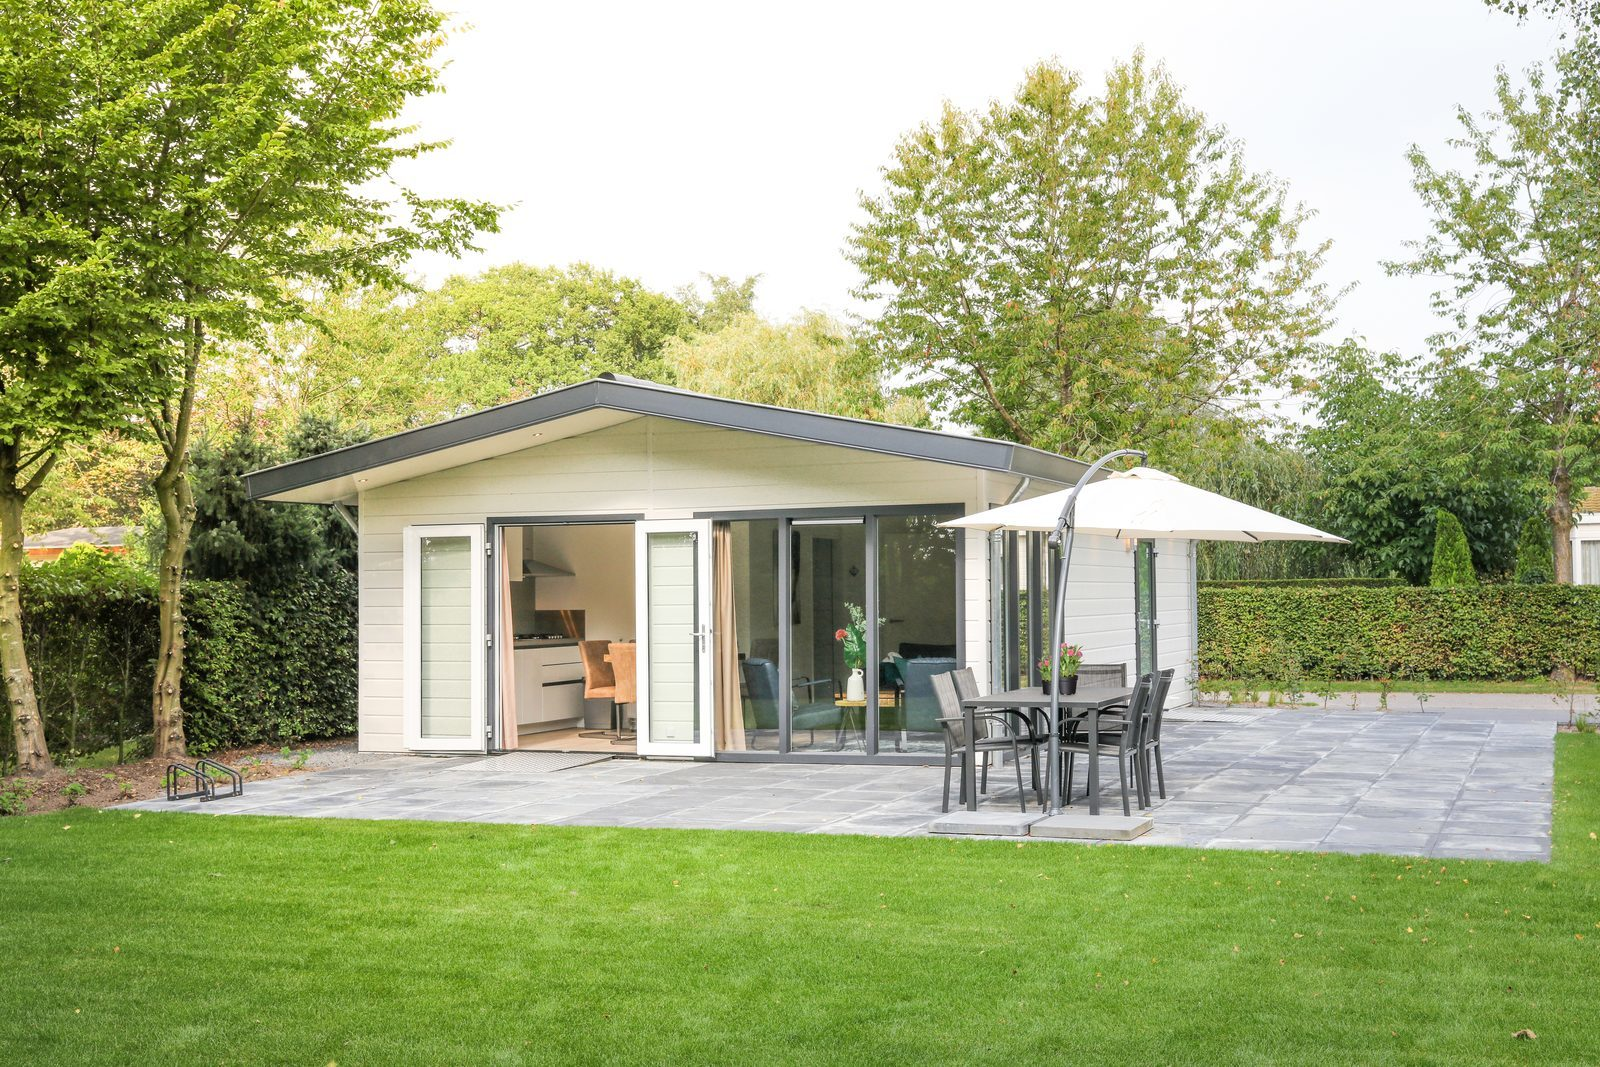 Holiday home in the Achterhoek